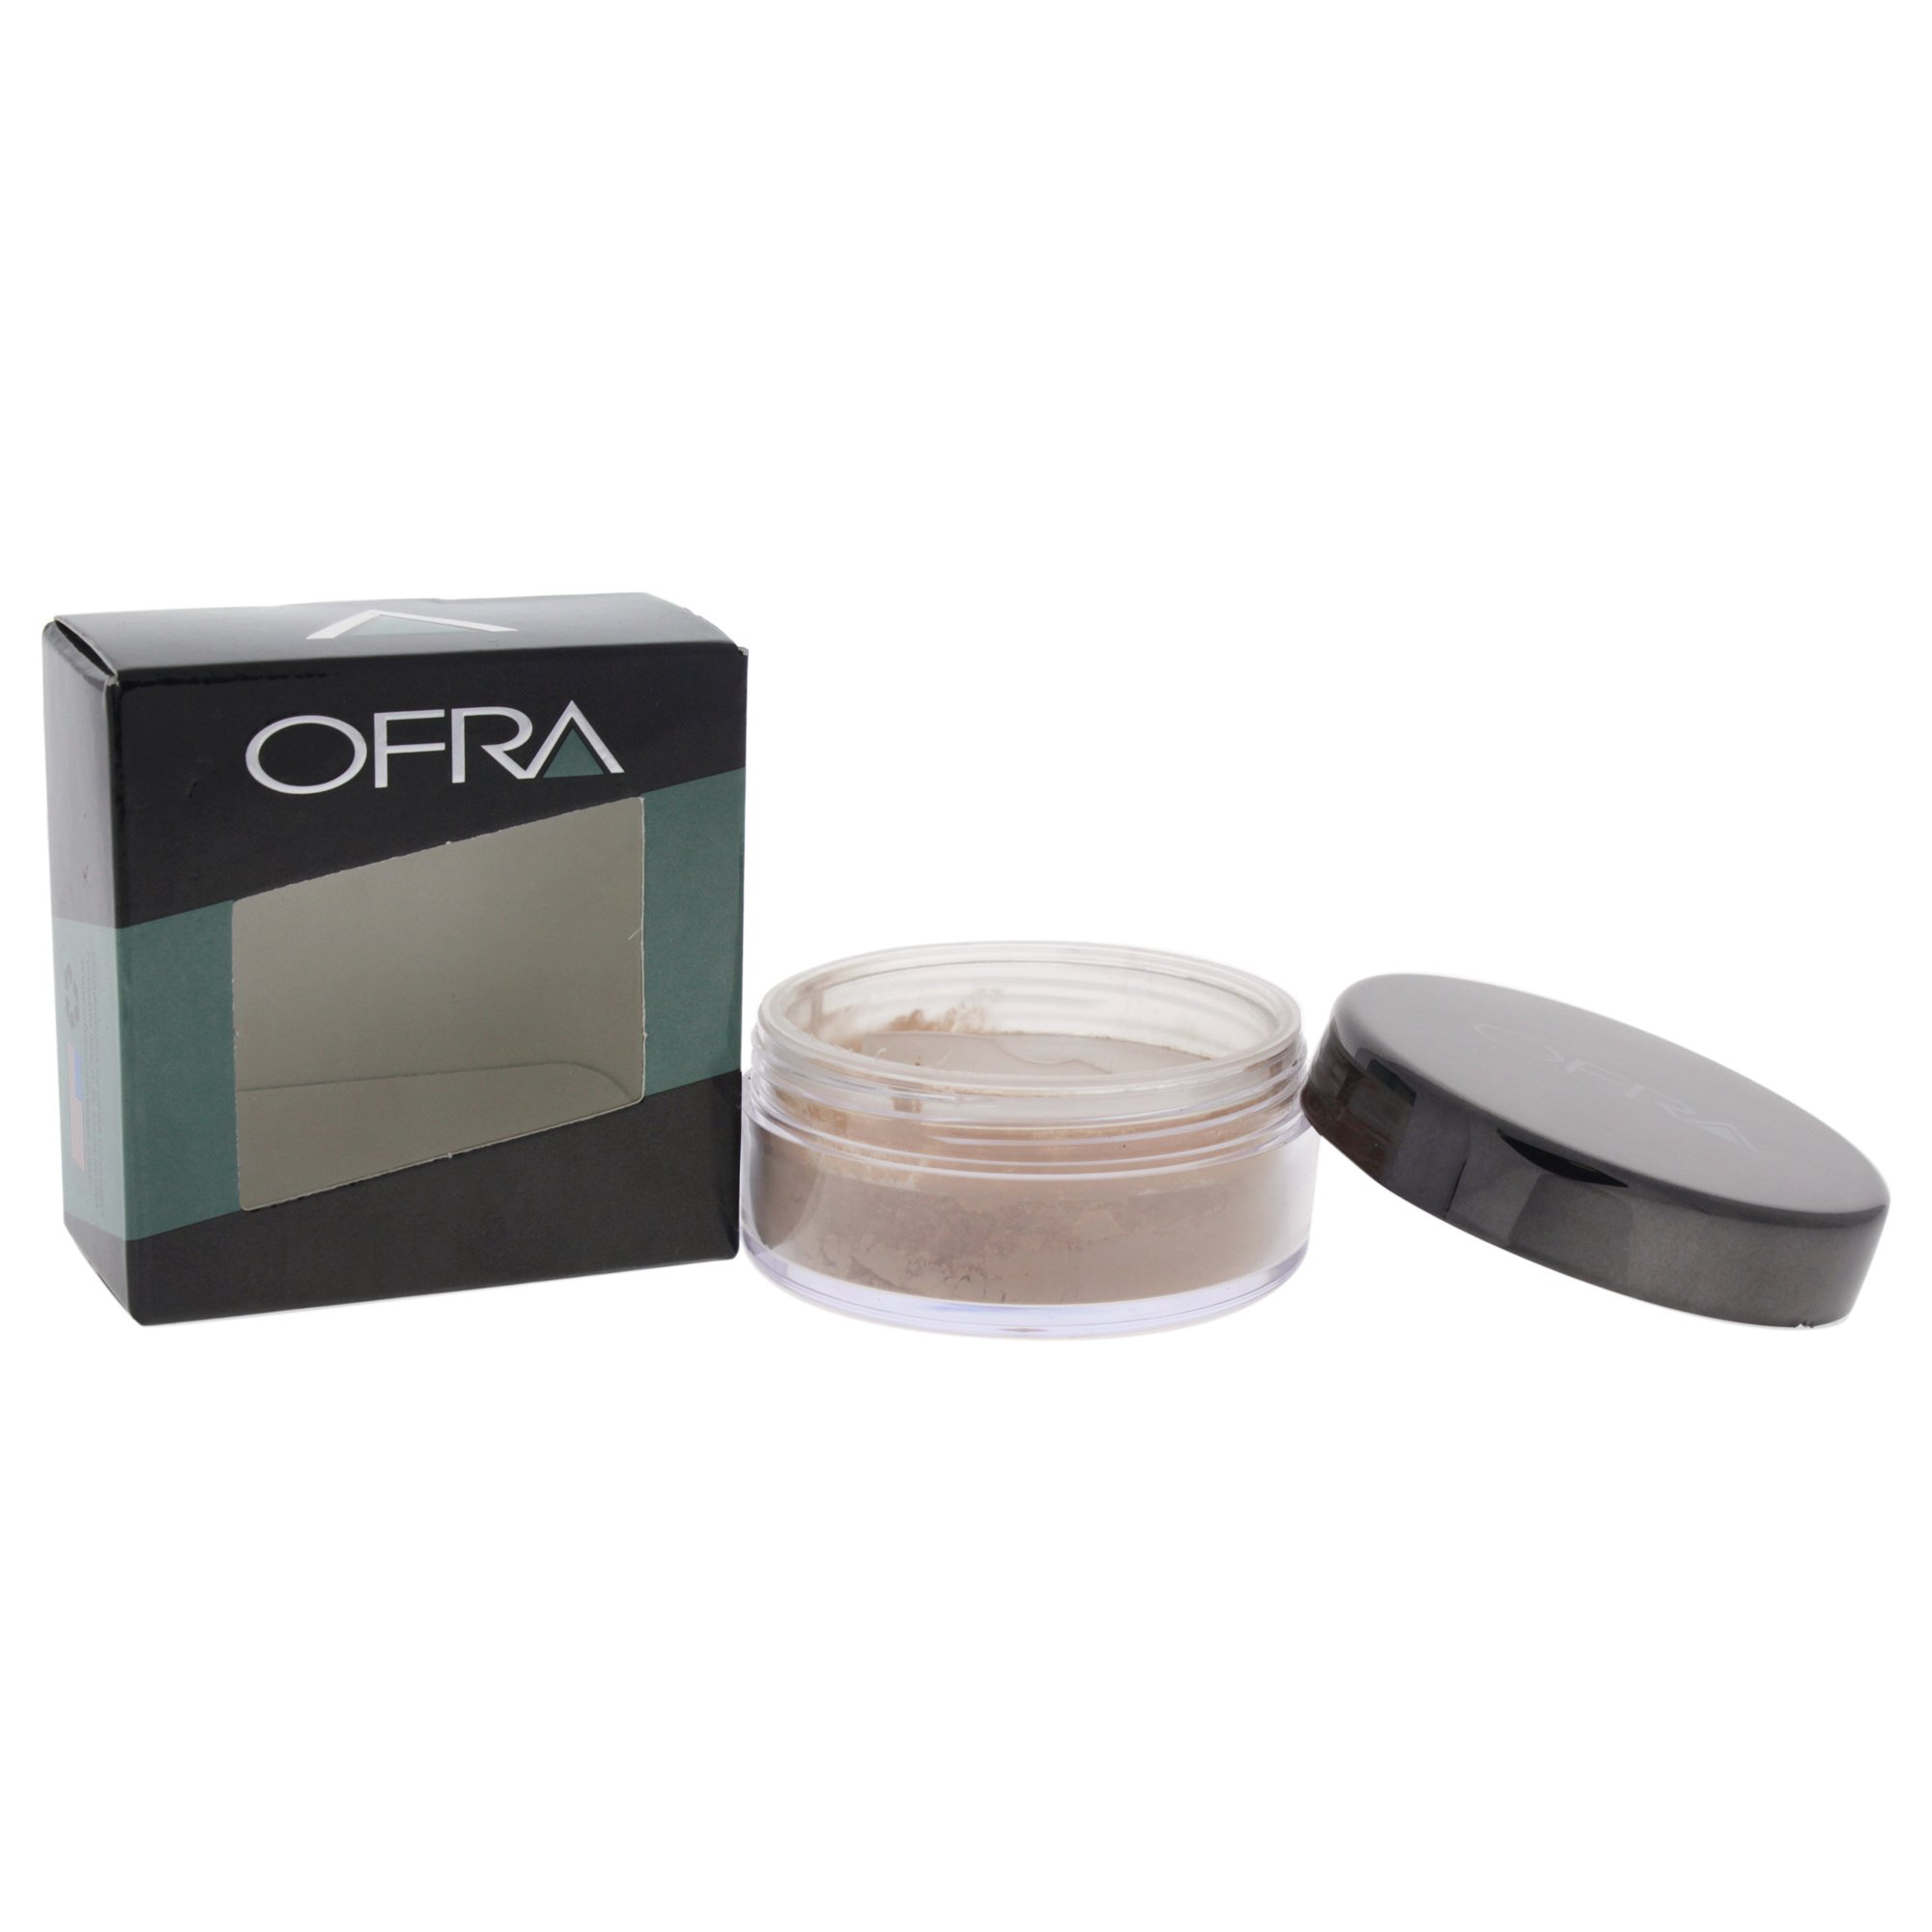 Ofra Acne Treatment Loose Mineral Powder for Women, Grand Canyon, 0.2 Ounce